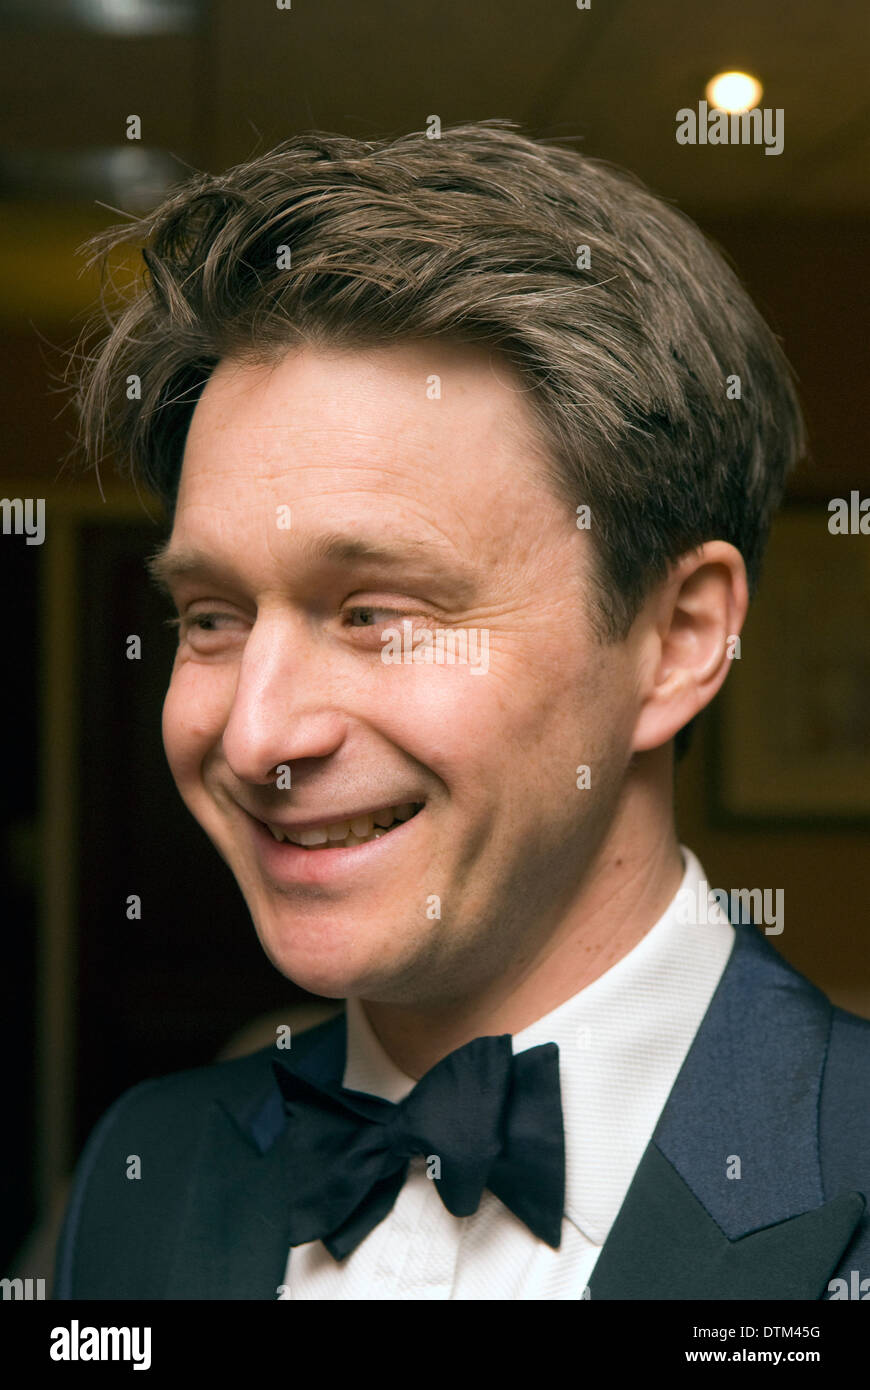 TV antiques expert Jonathan Pratt at a fundraising event, Haslemere, Surrey, UK. - Stock Image